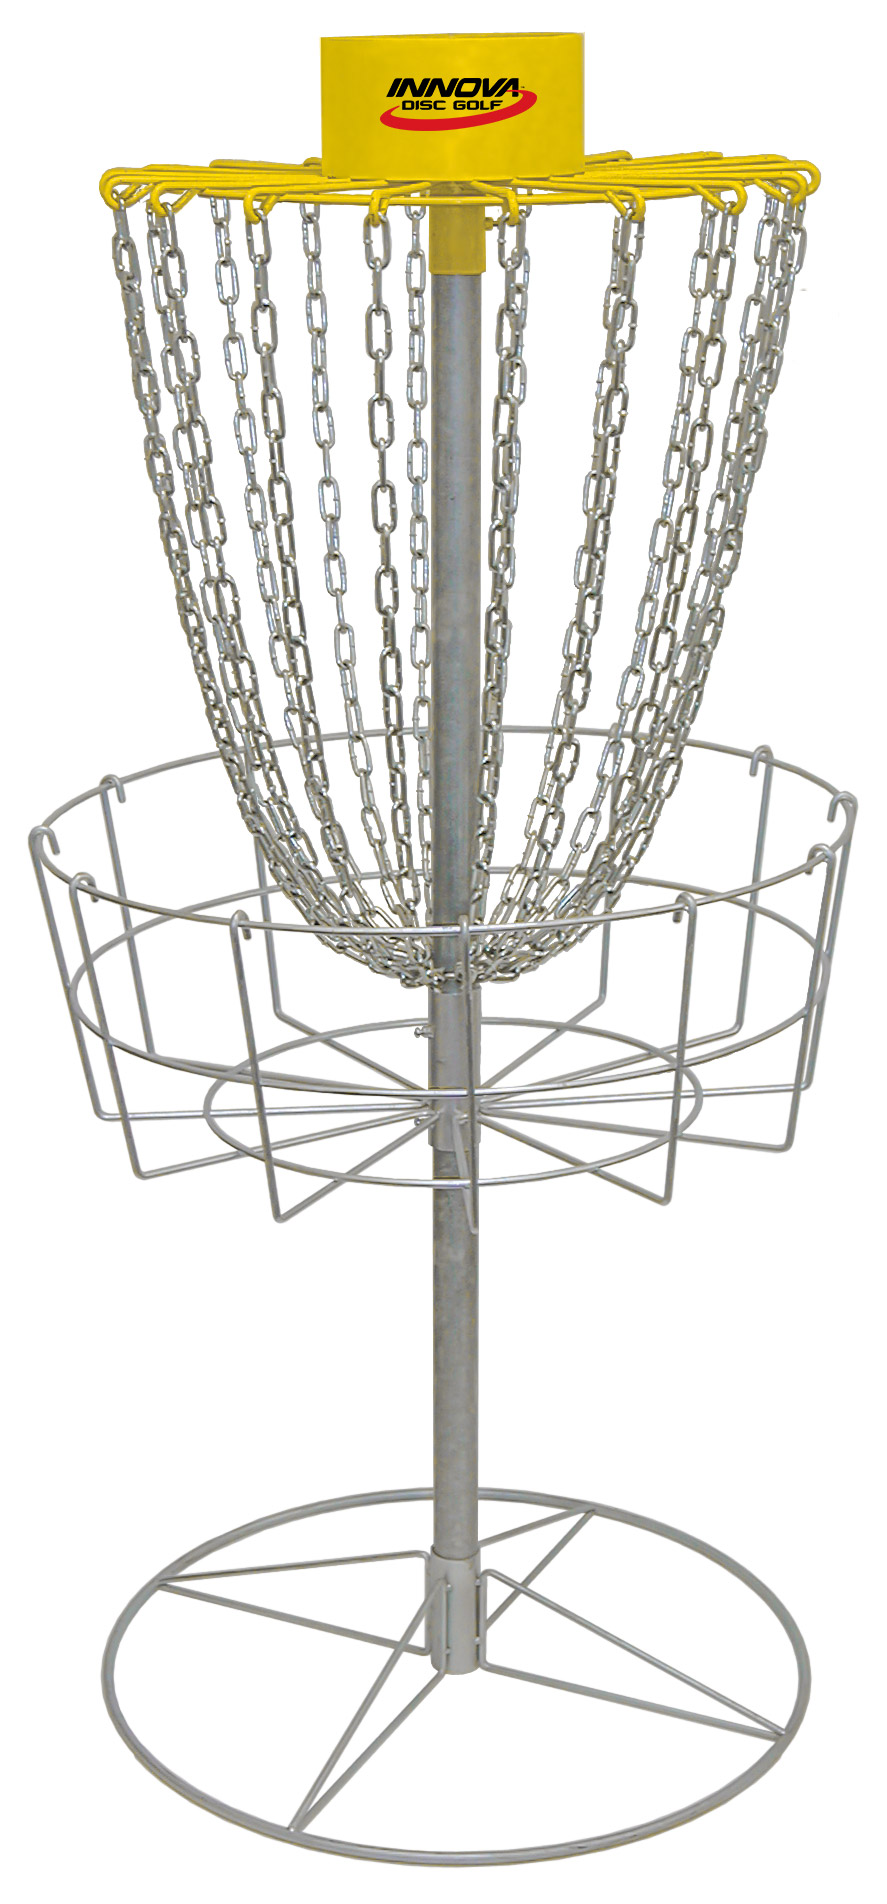 Innova Disc Golf DISCatcher Sport Disc Golf Target by Innova Champion Discs